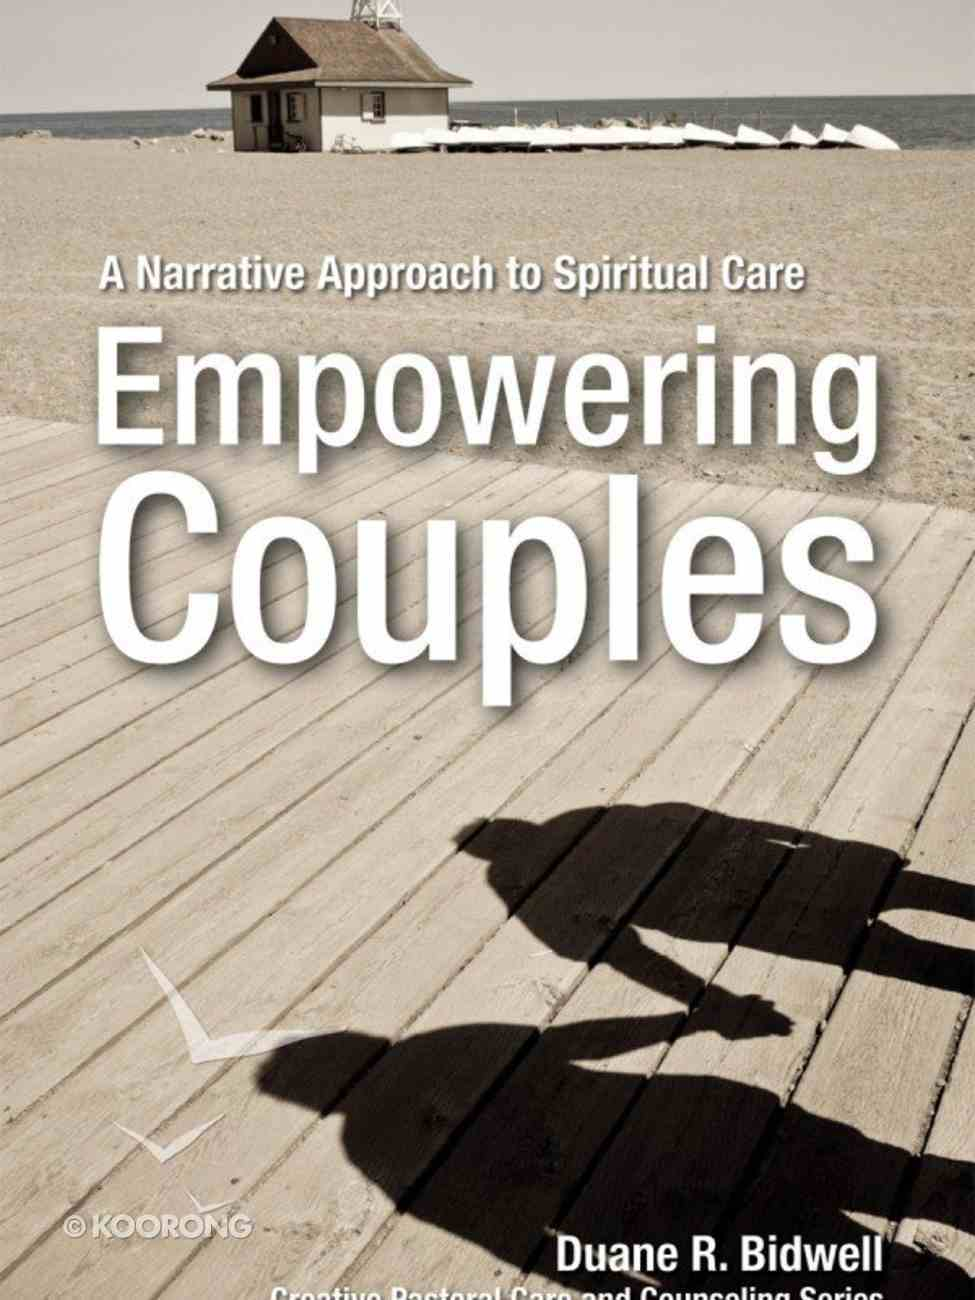 Empowering Couples (Creative Pastoral Care And Counseling Series) eBook